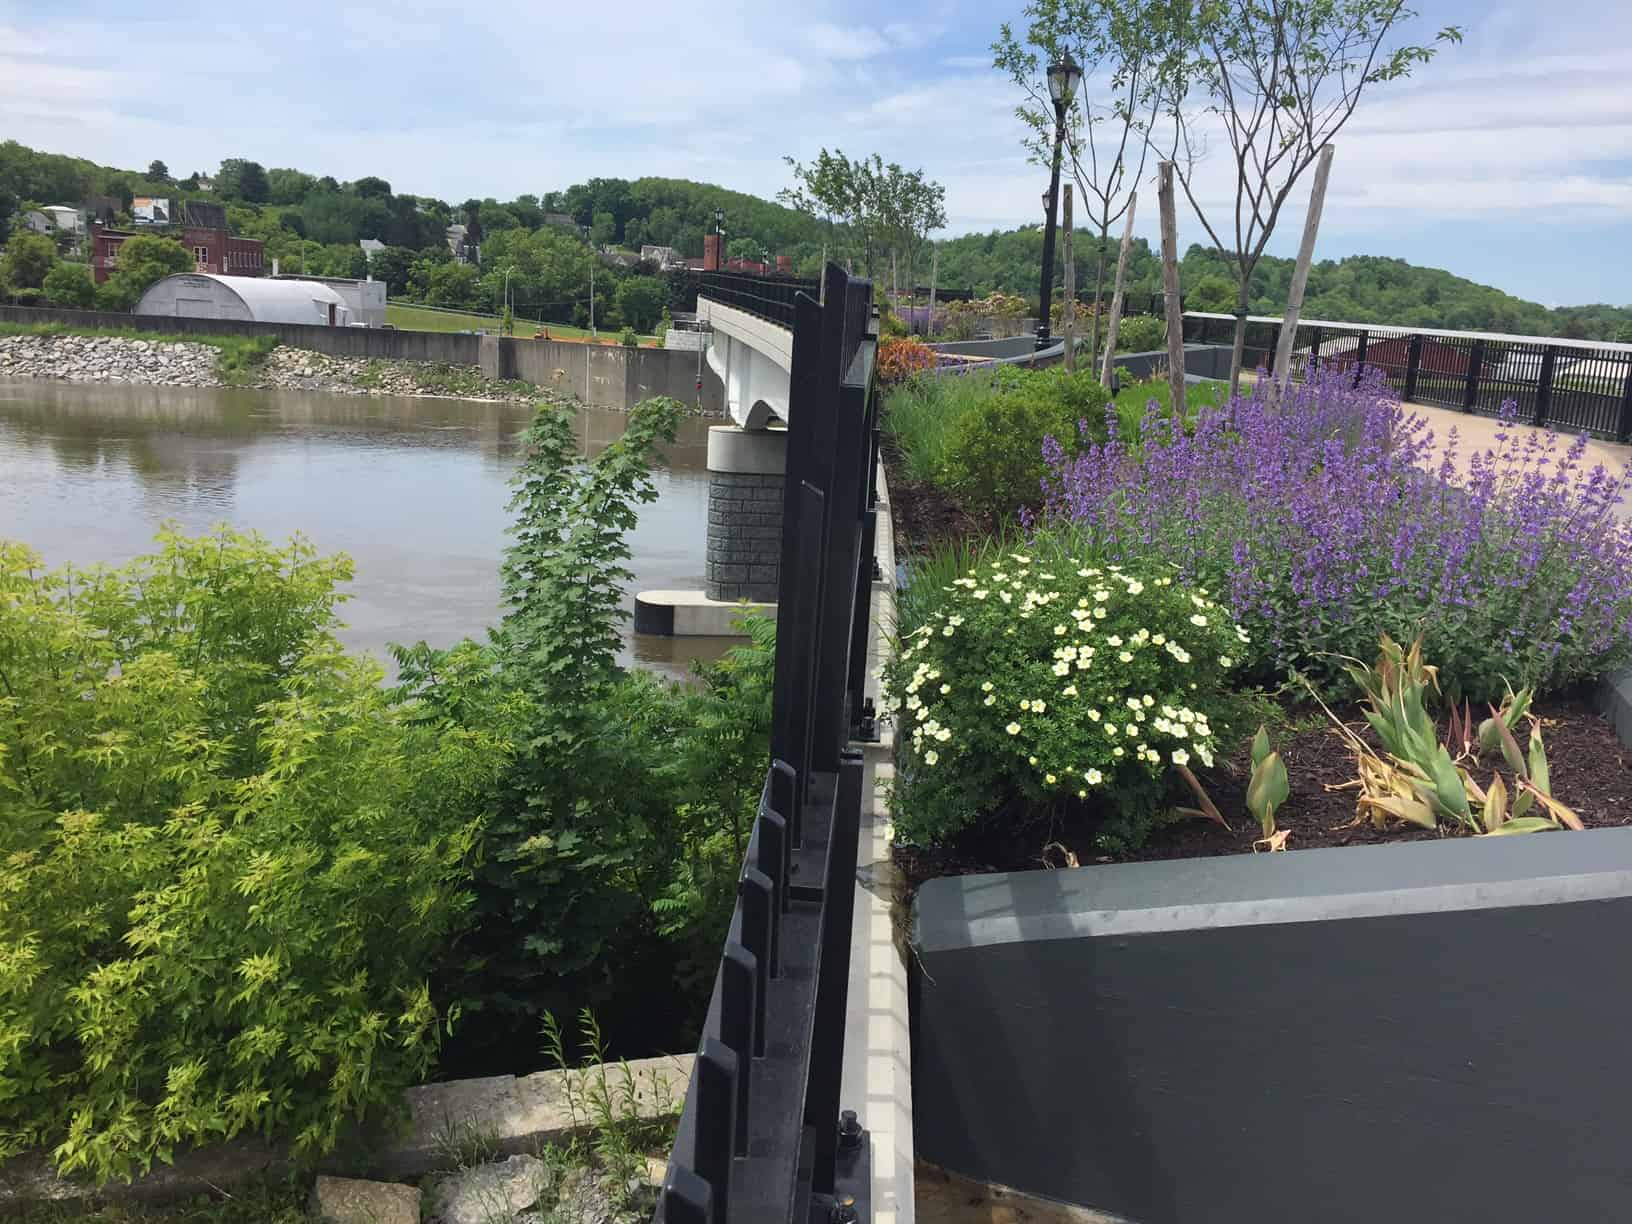 These are just a portion of The Mohawk Valley Gateway Overlook Pedestrian Bridge's flowers